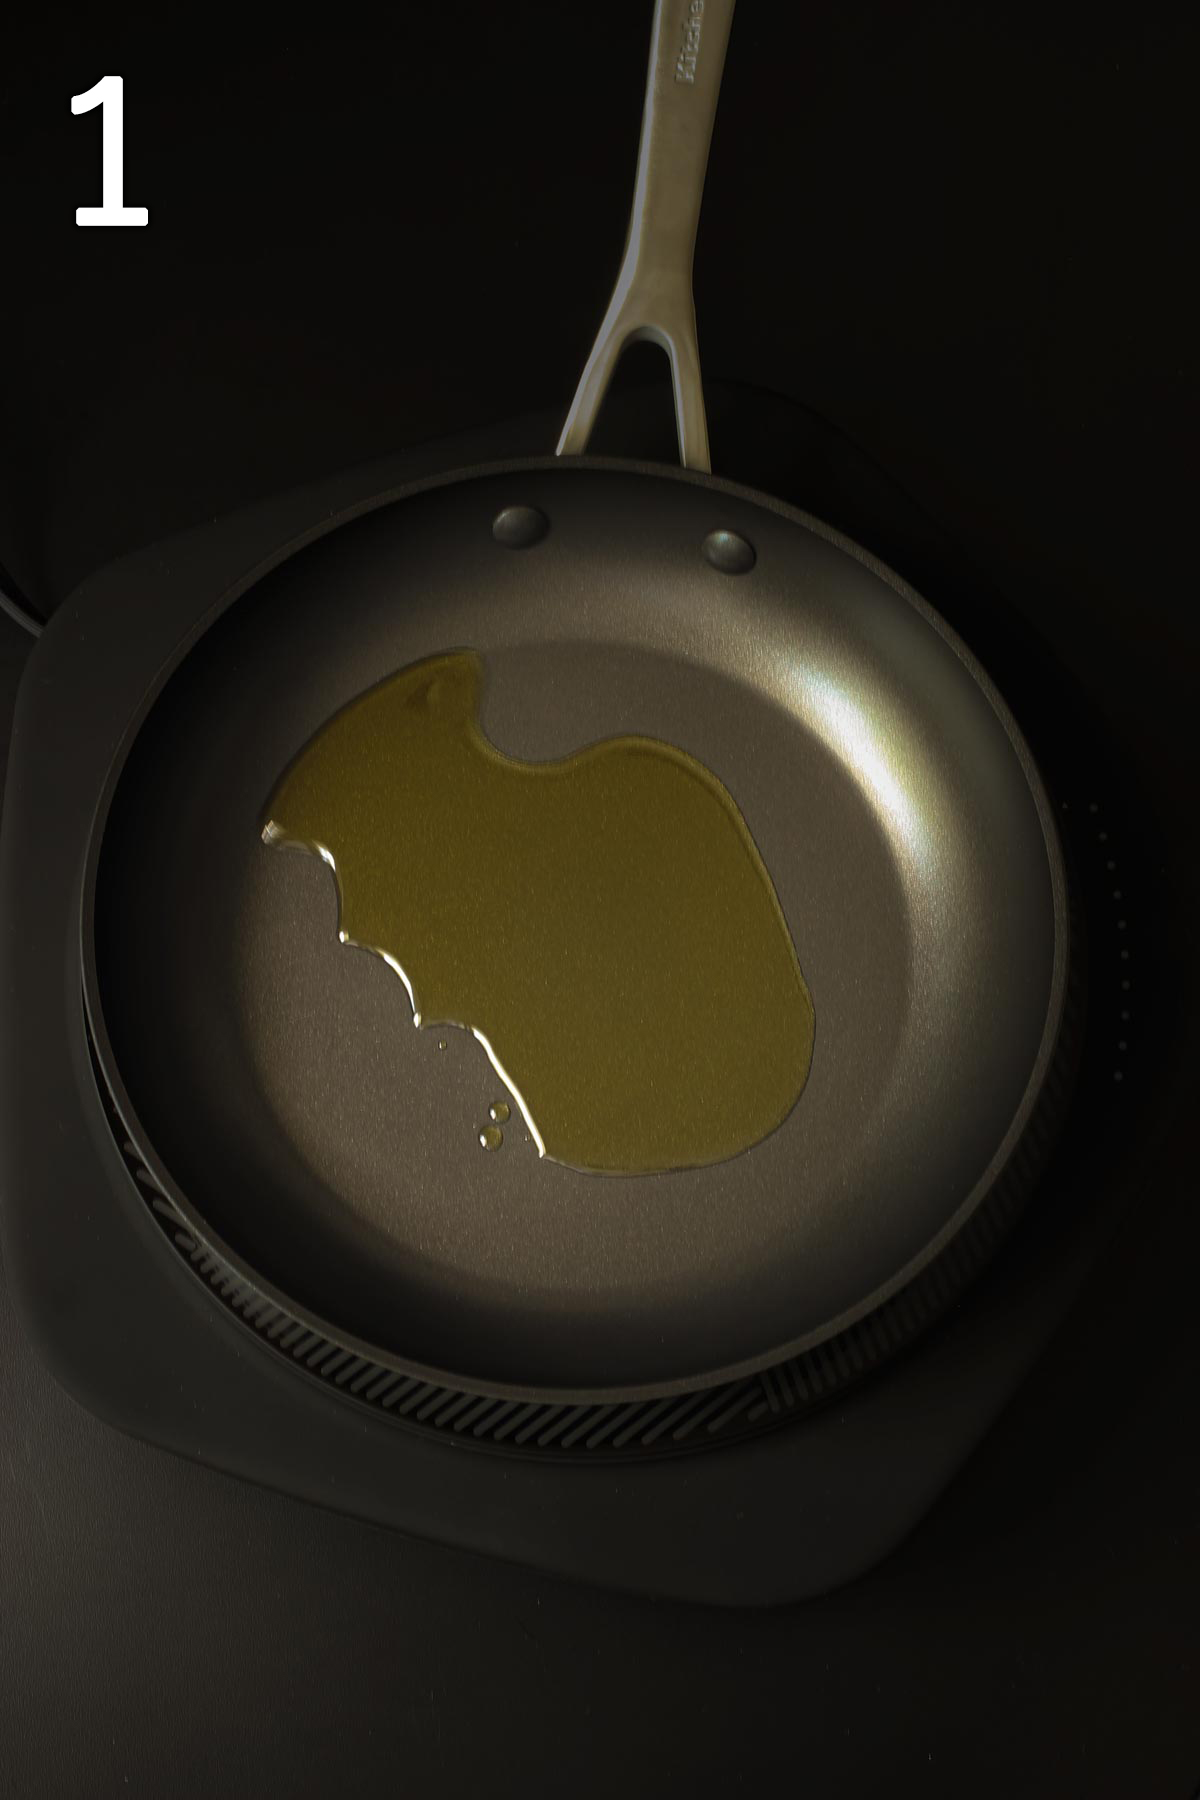 heating oil in a skillet.